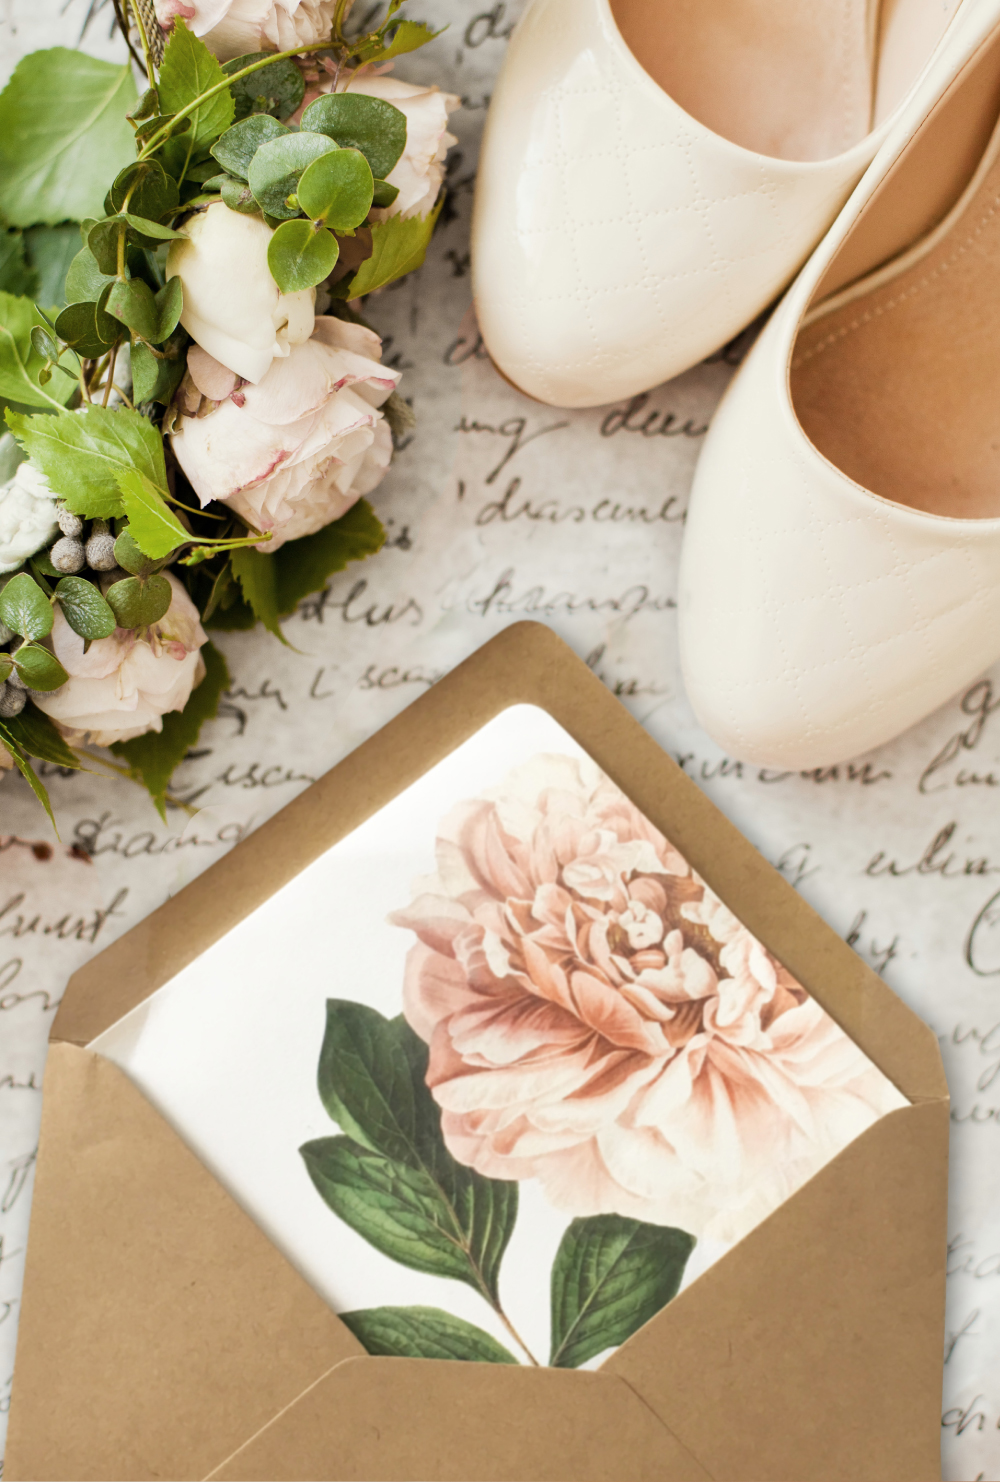 peach-peony-wedding-invitation-kraft-paper-envelope-liner-.jpg